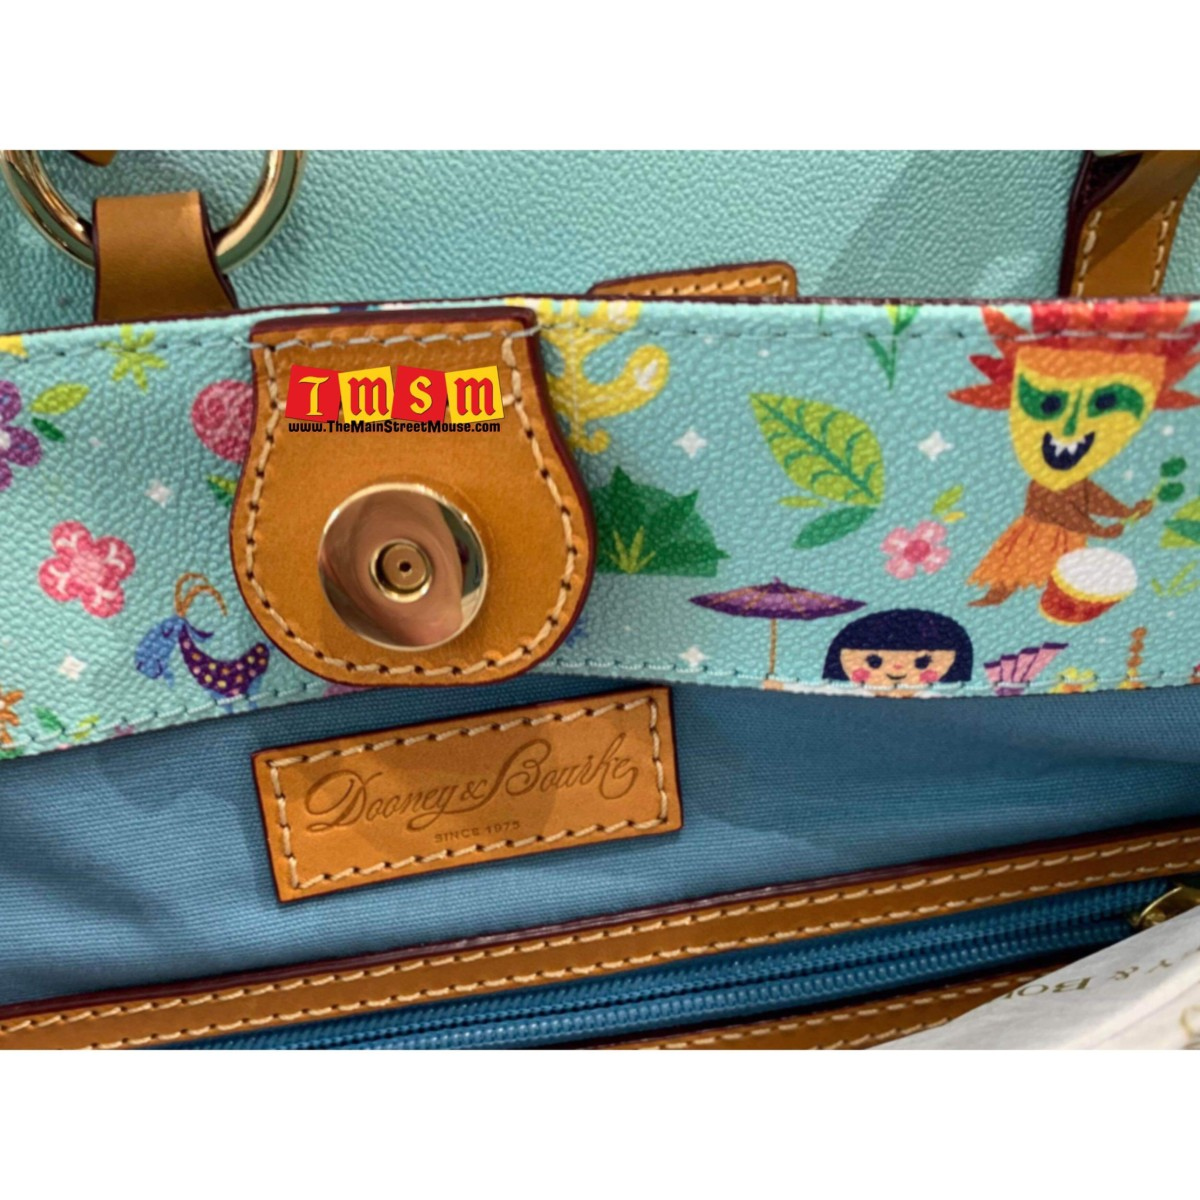 It's a small world after all with this new Dooney and Bourke collection 3